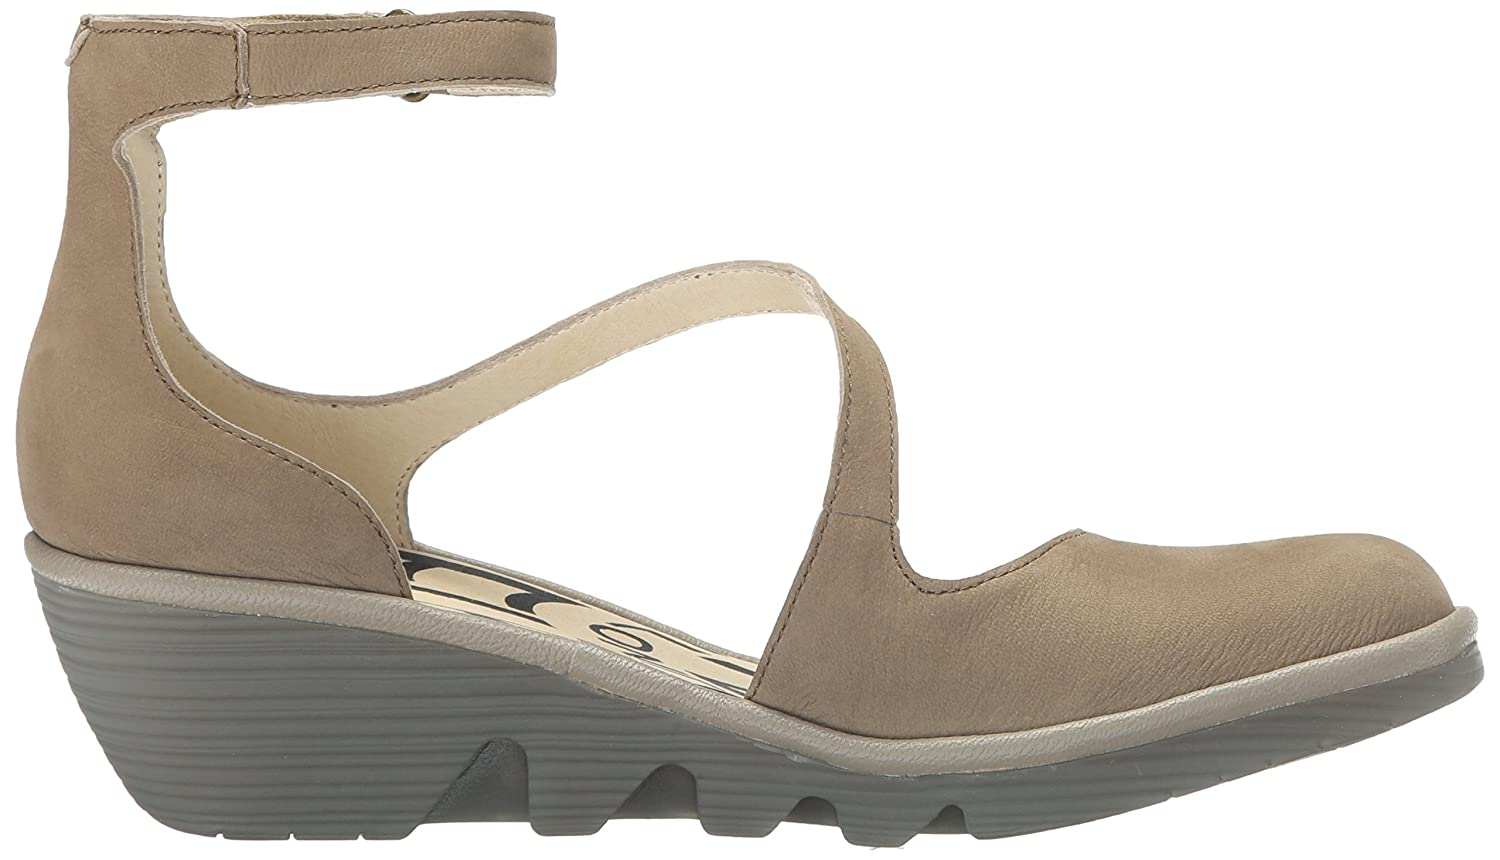 FLY London 40 Women's Plan717fly Flat B01HJAK648 40 London EU/9 - 9.5 M US|Taupe/Mushroom Cupido/Mousse 446a6b